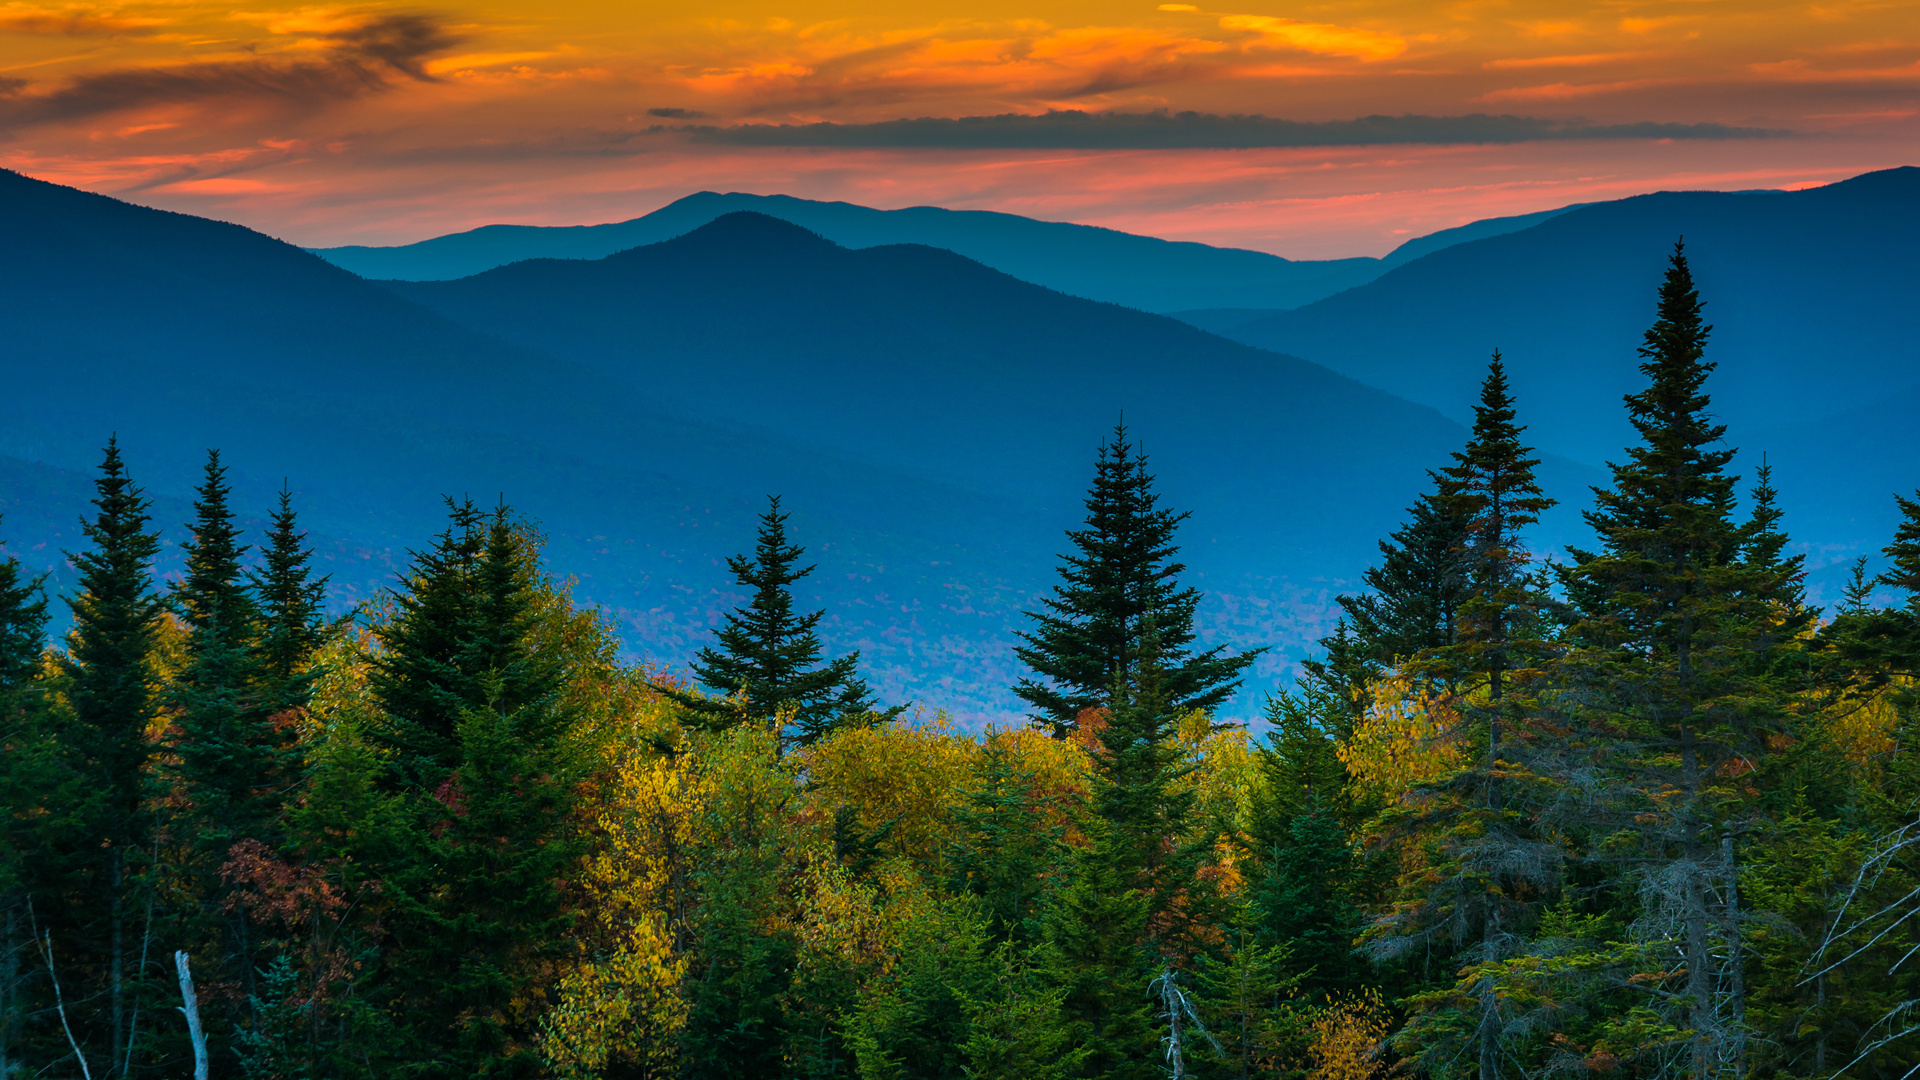 New Hampshire restaurants and activities | The White Mountains looming in the distance behind the trees